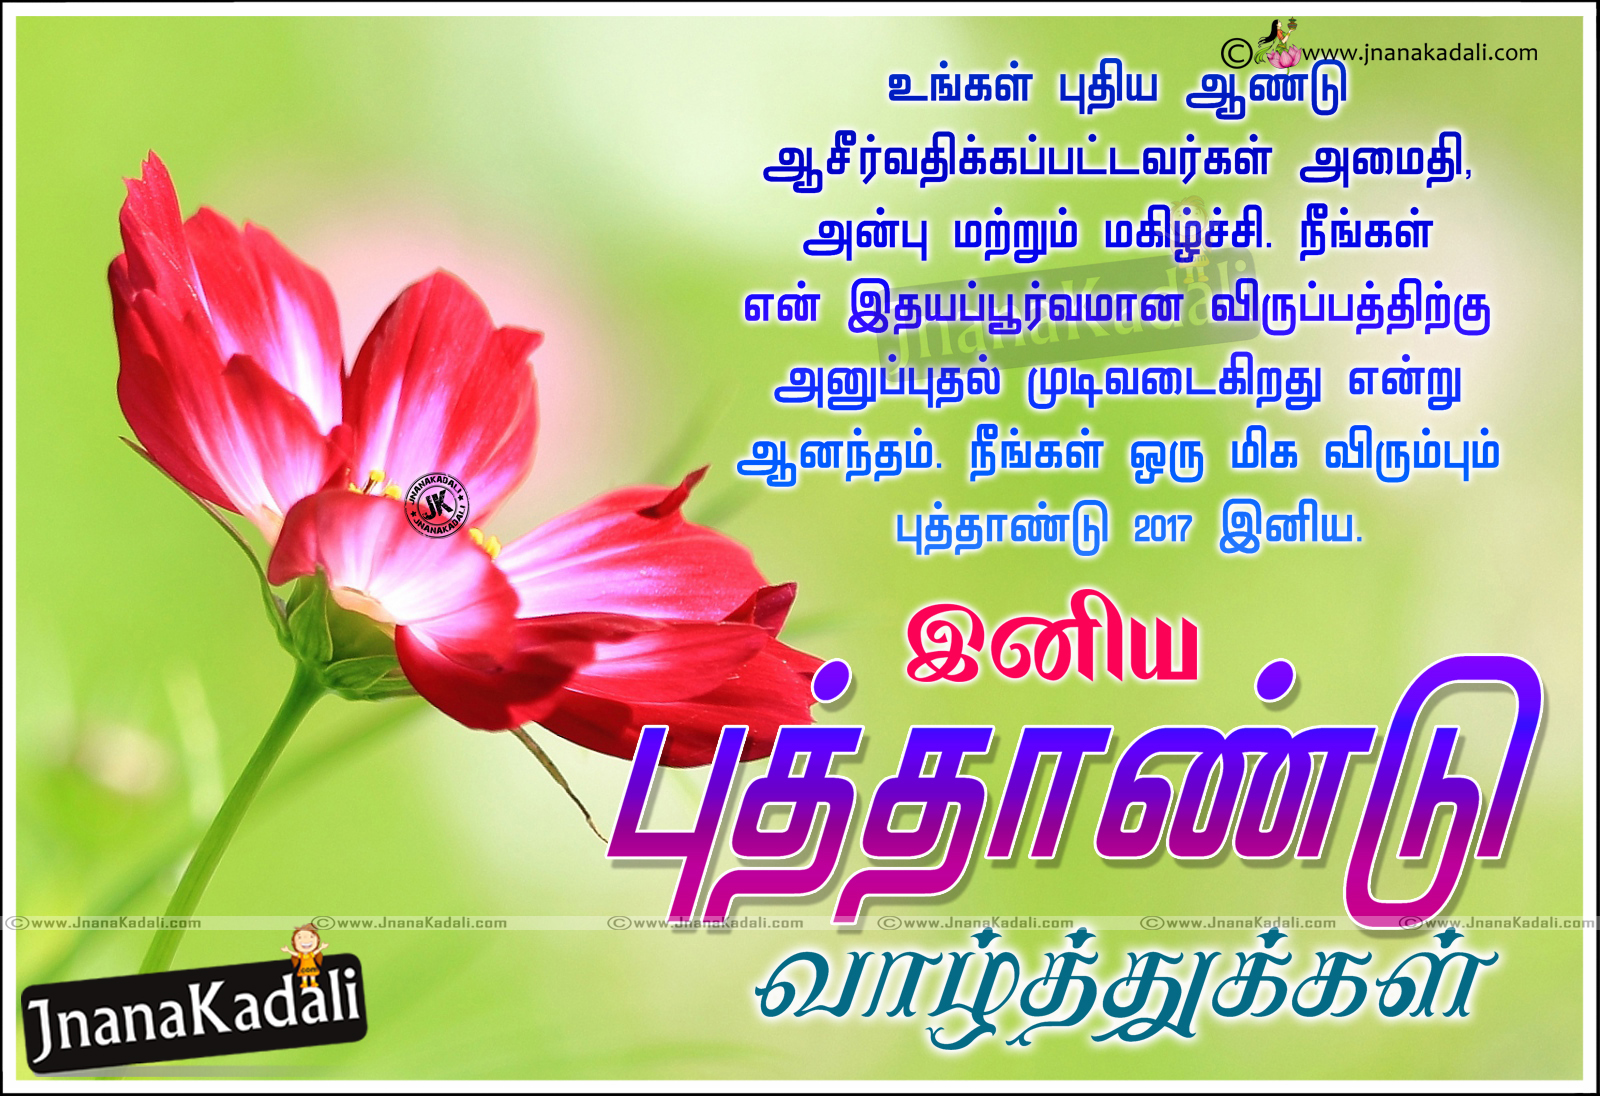 2017 new year tamil greetings with hd wallpapers jnana kadali latest tamil new year 2017 greetings tamil greetings in tamil font tamil new year messages tamil new year sms tamil whats app status greetings with hd kristyandbryce Gallery